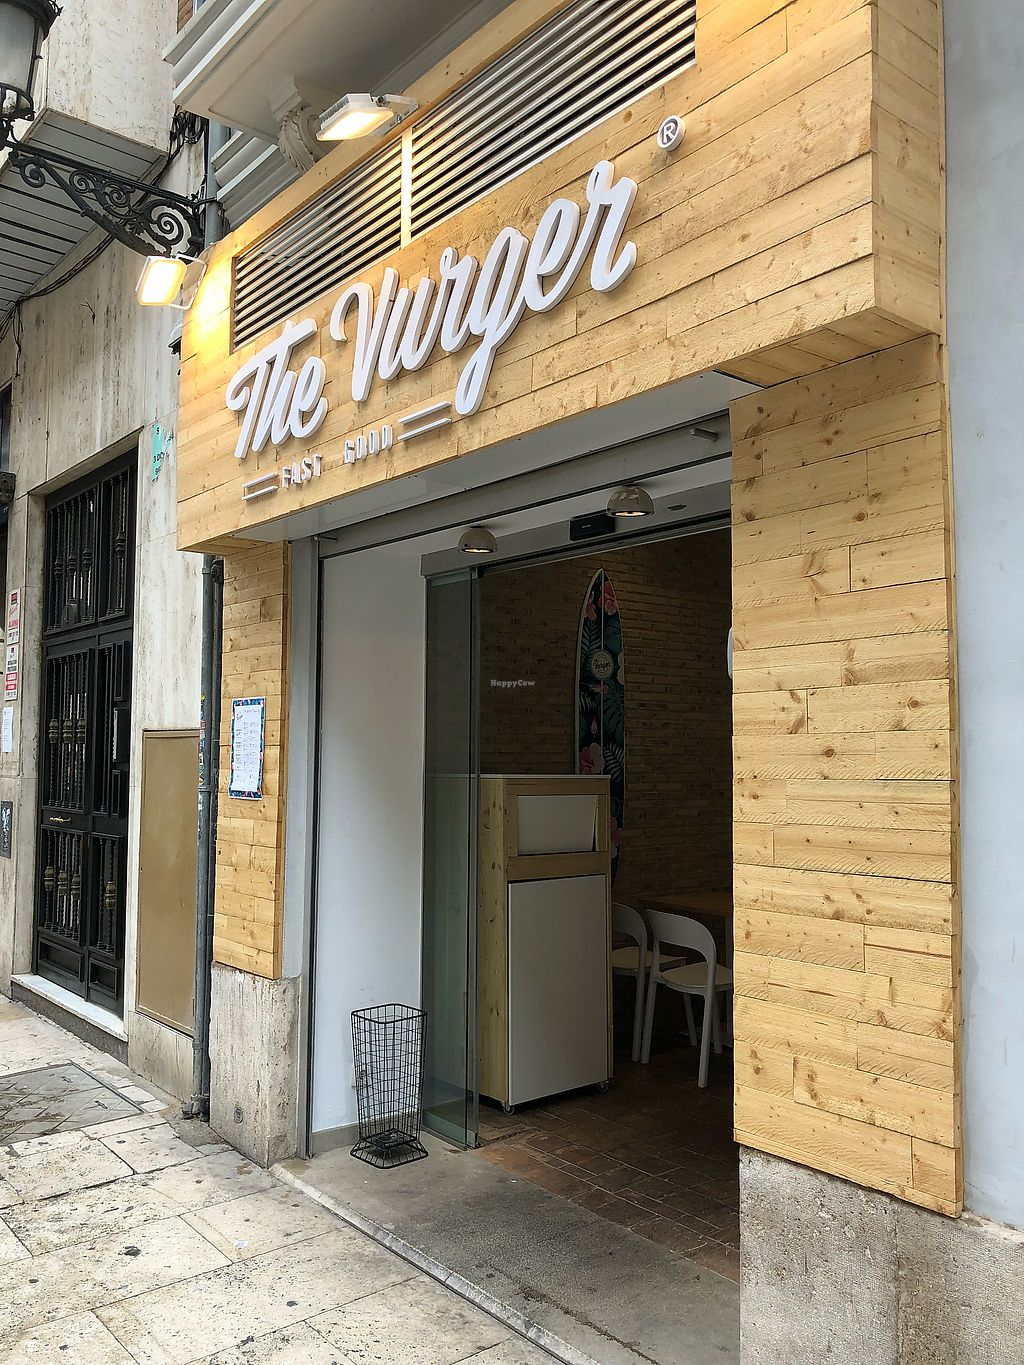 """Photo of The Vurger - Santa Ana  by <a href=""""/members/profile/_hael"""">_hael</a> <br/>Storefront <br/> February 8, 2018  - <a href='/contact/abuse/image/107067/356541'>Report</a>"""